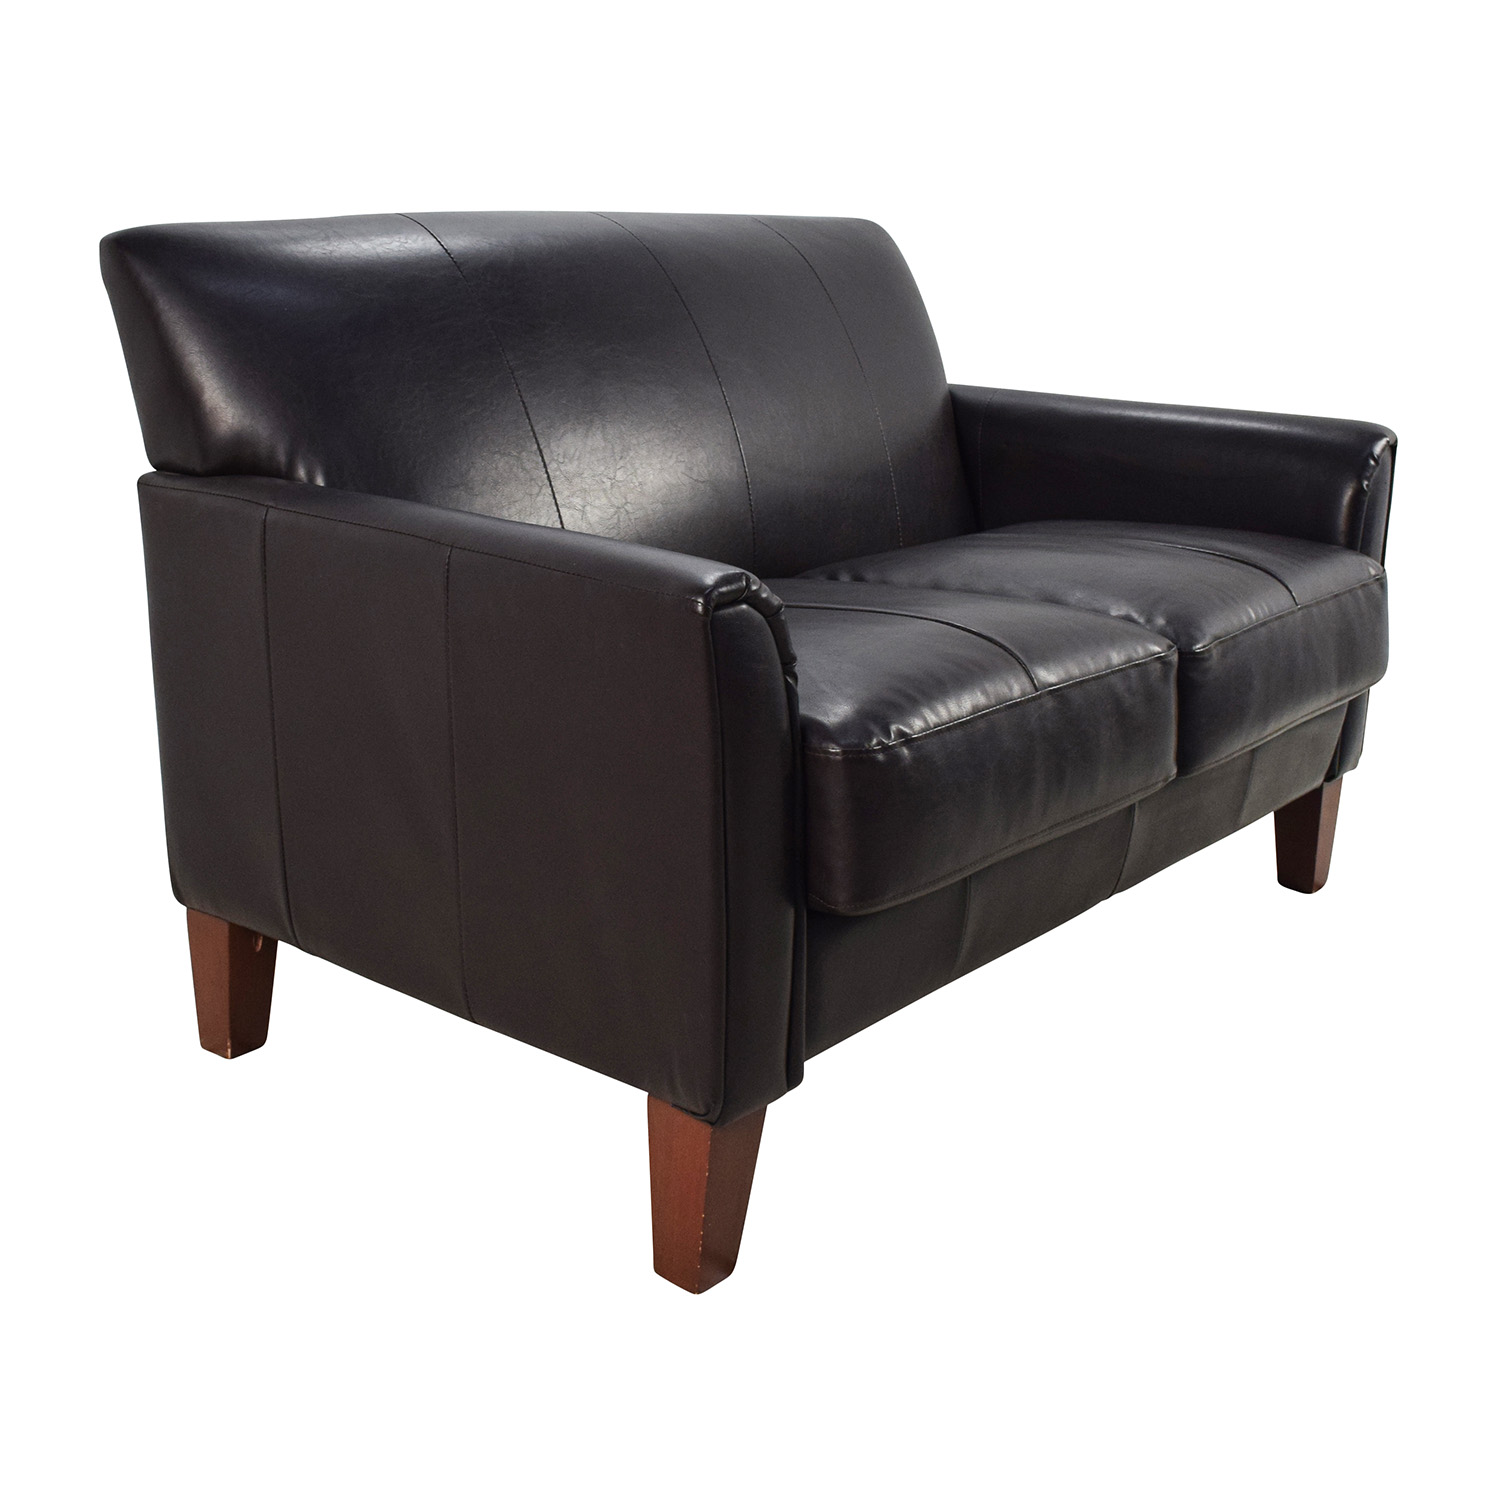 53 Off Black Leather Loveseat Sofas